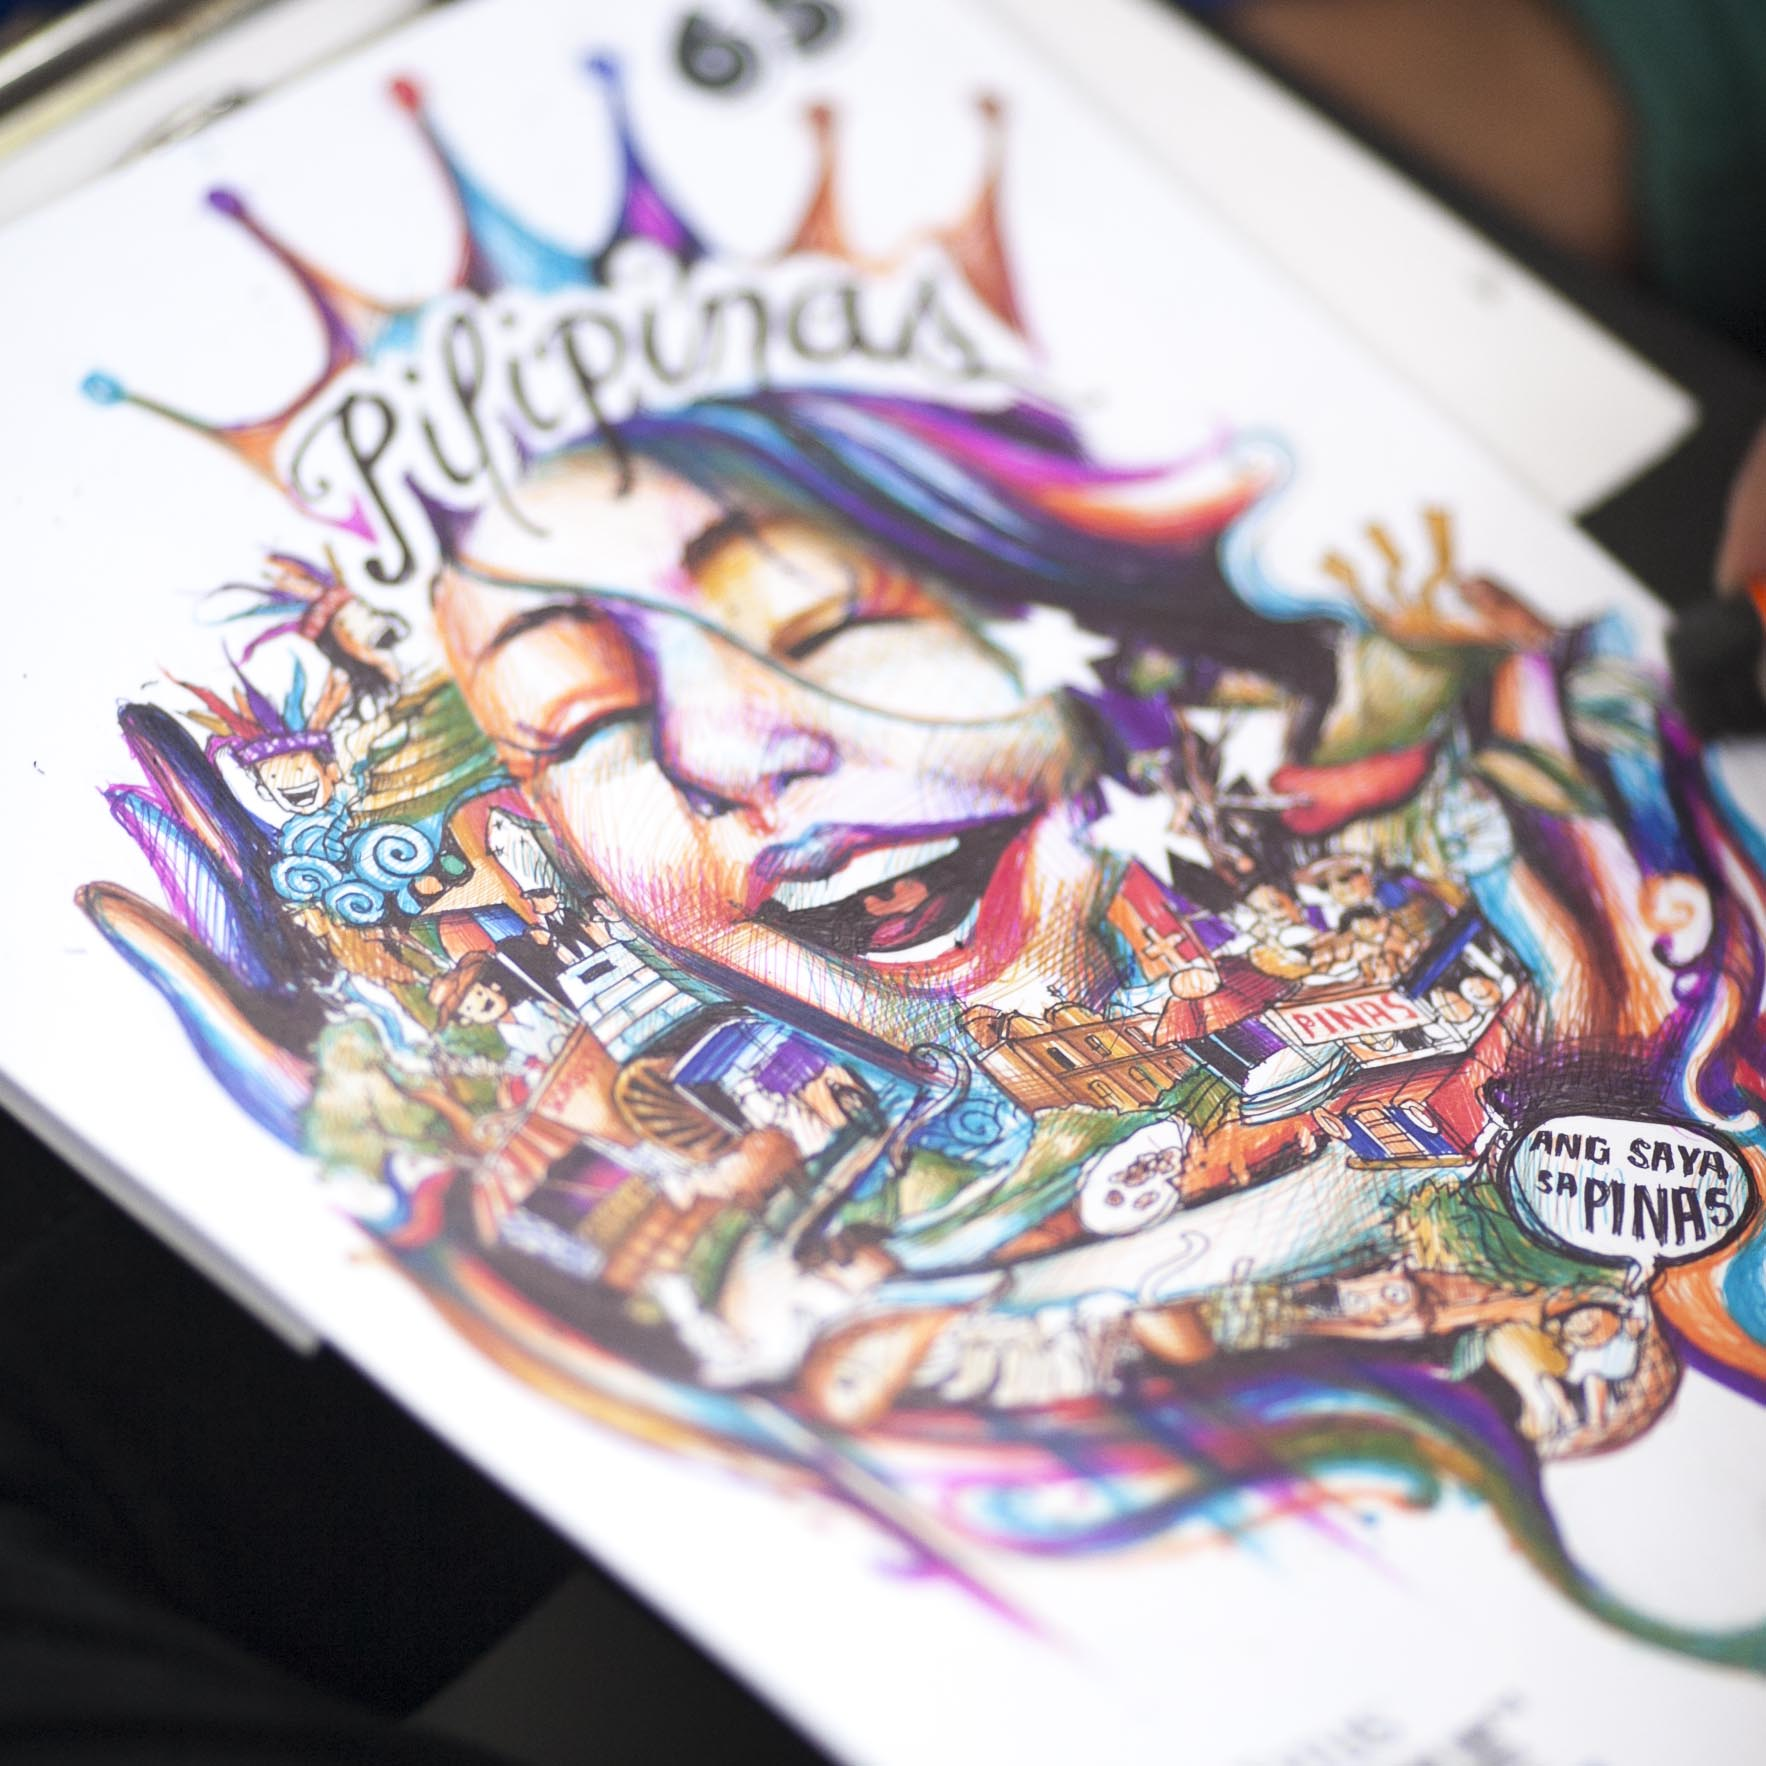 Doodling on a Different Level: Titus Pens iDoodle Challenge